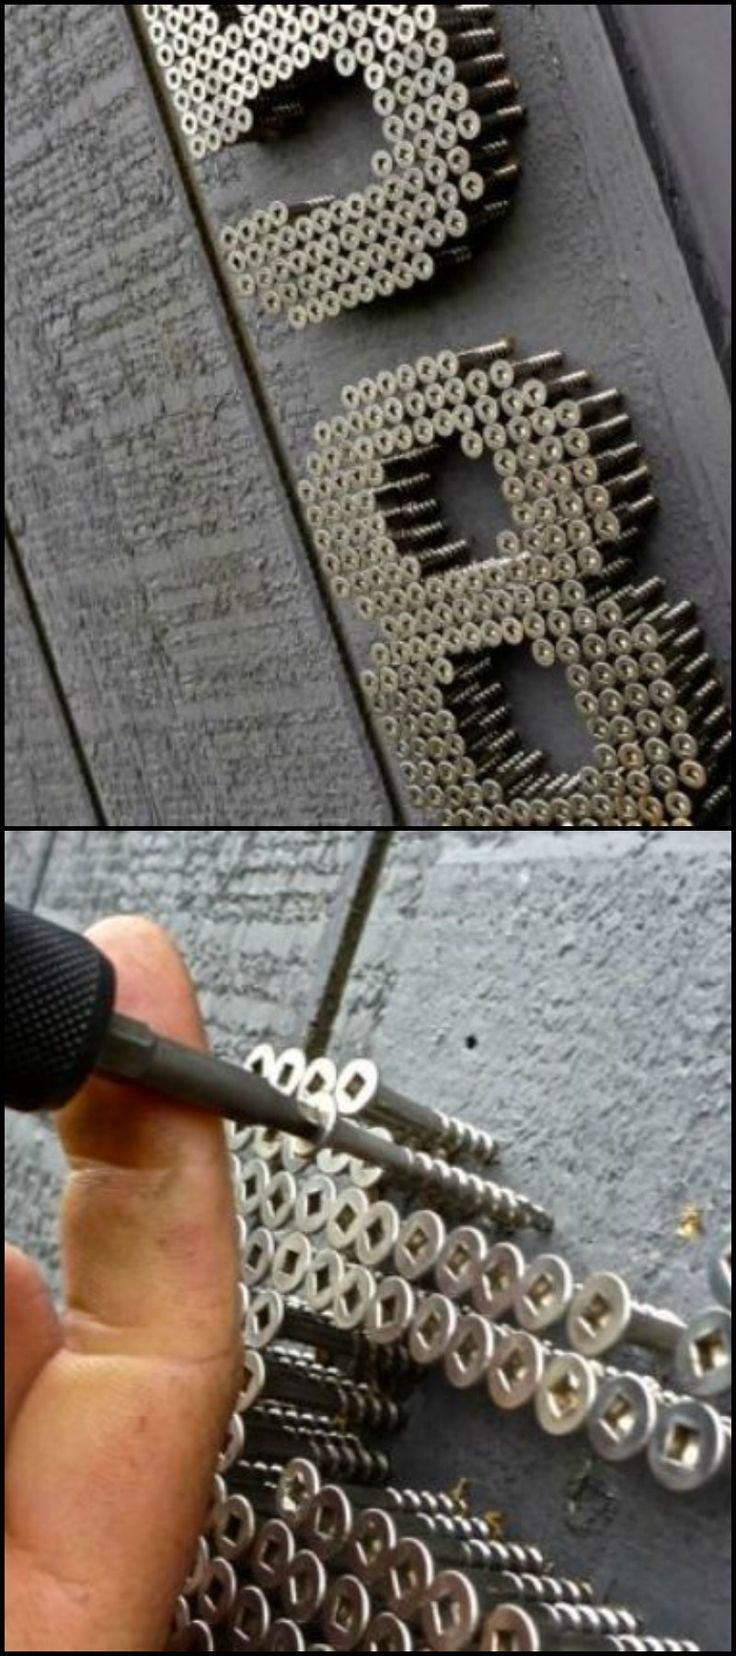 An unusual idea for house numbers.This is an industrial idea that uses screws driv